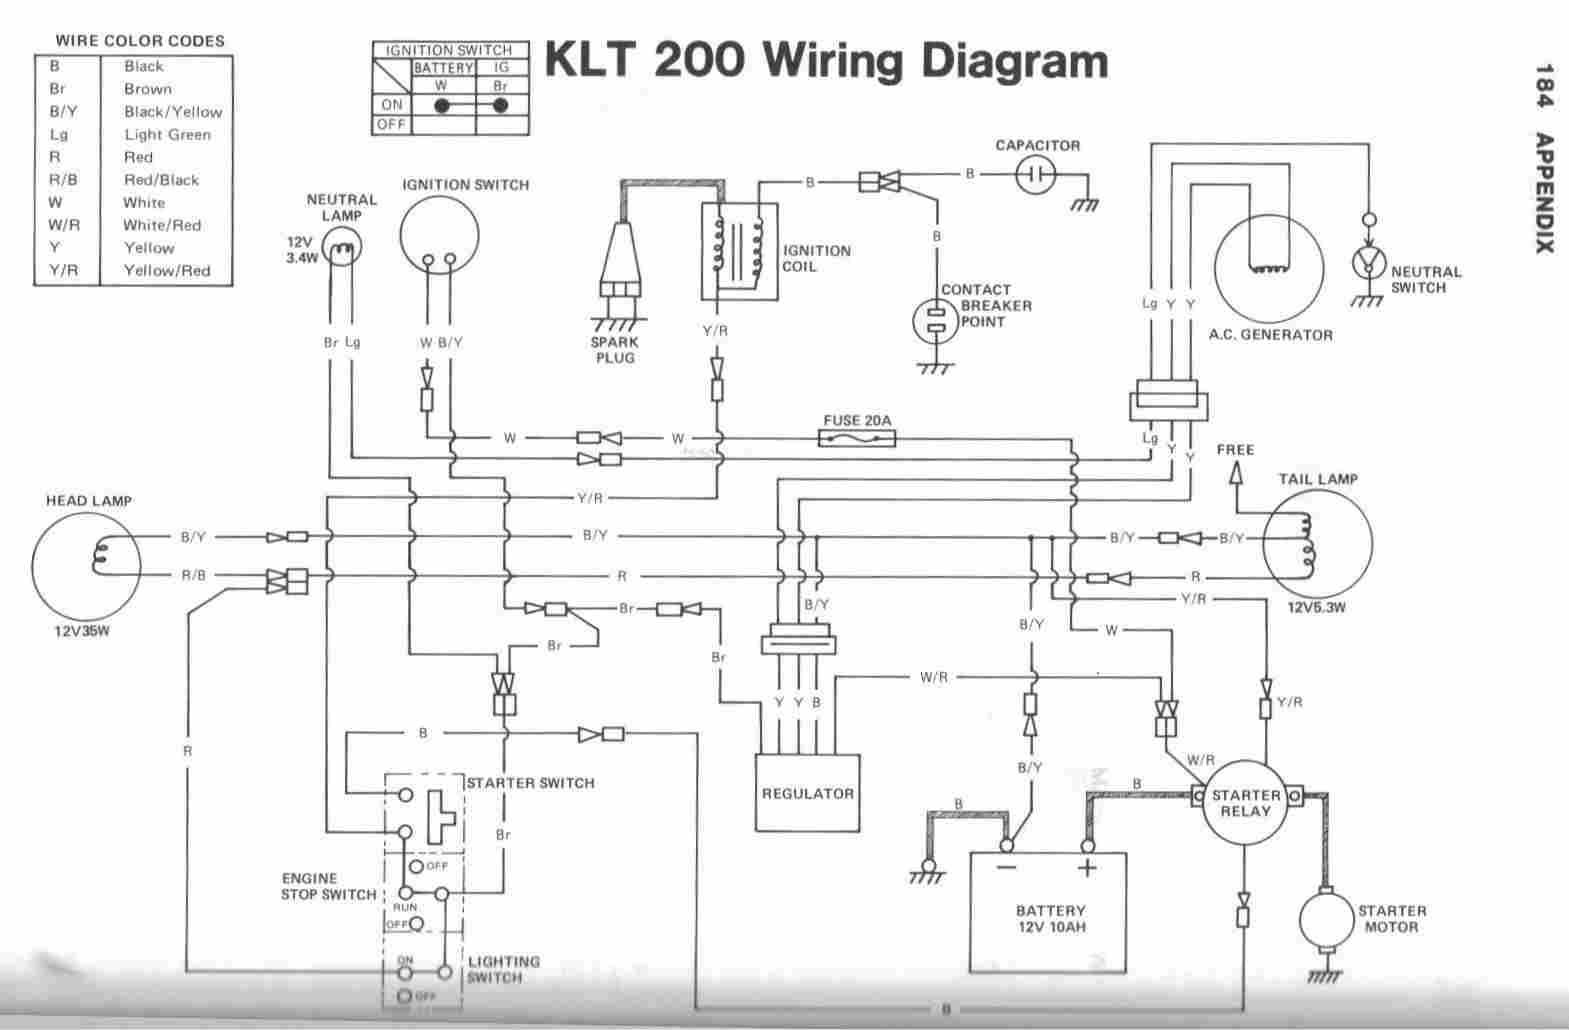 2869034594ce054a636782e5c44b61b4 residential electrical wiring diagrams pdf easy routing cool house wiring diagram symbols pdf at aneh.co